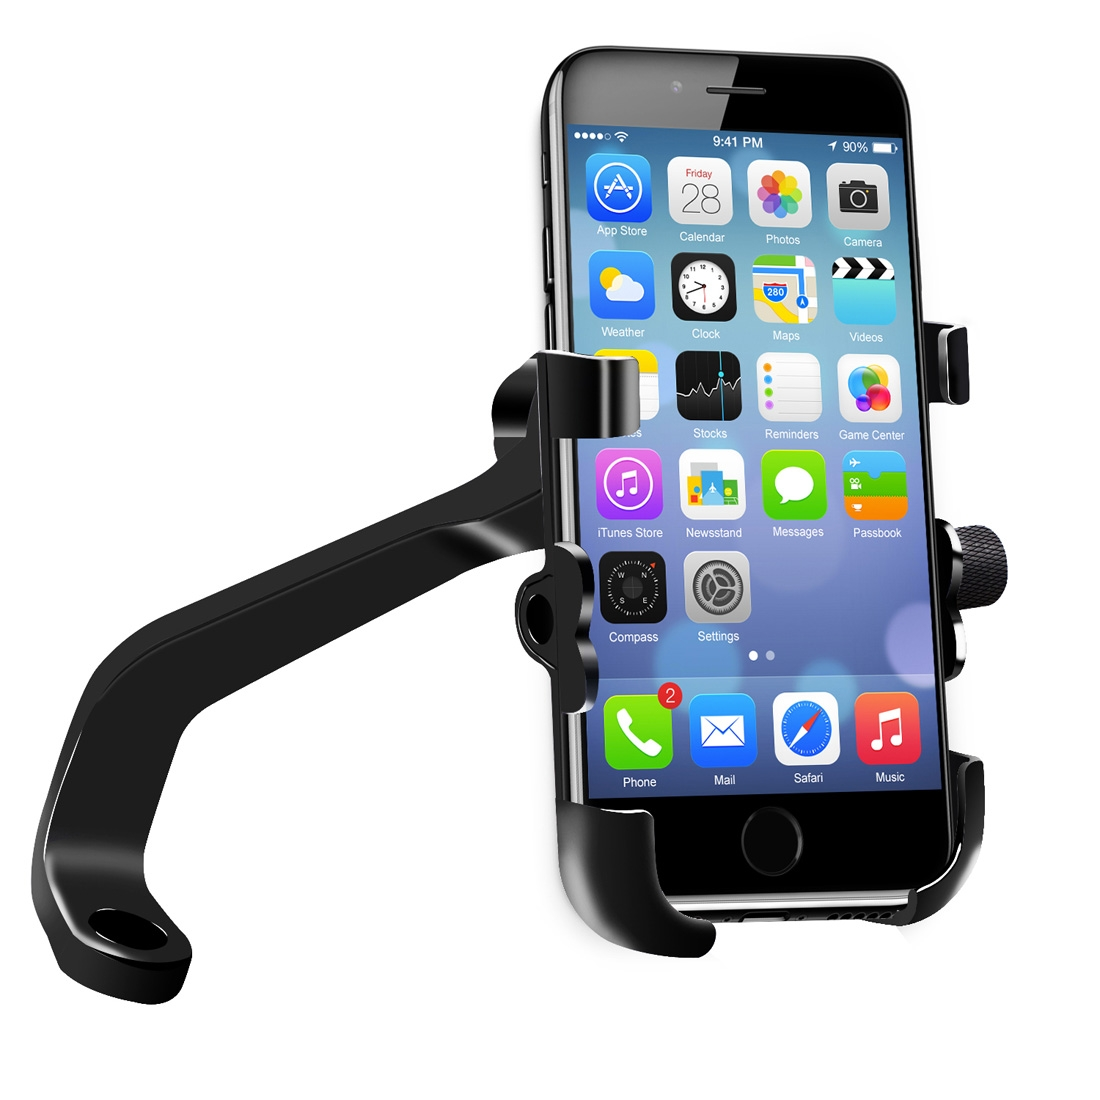 Waterproof Motorcycle Phone Mount with QC 3.0 USB Charger Socket Motorcycle Handlebar Charger Compatible with Samsung iPhone Phones